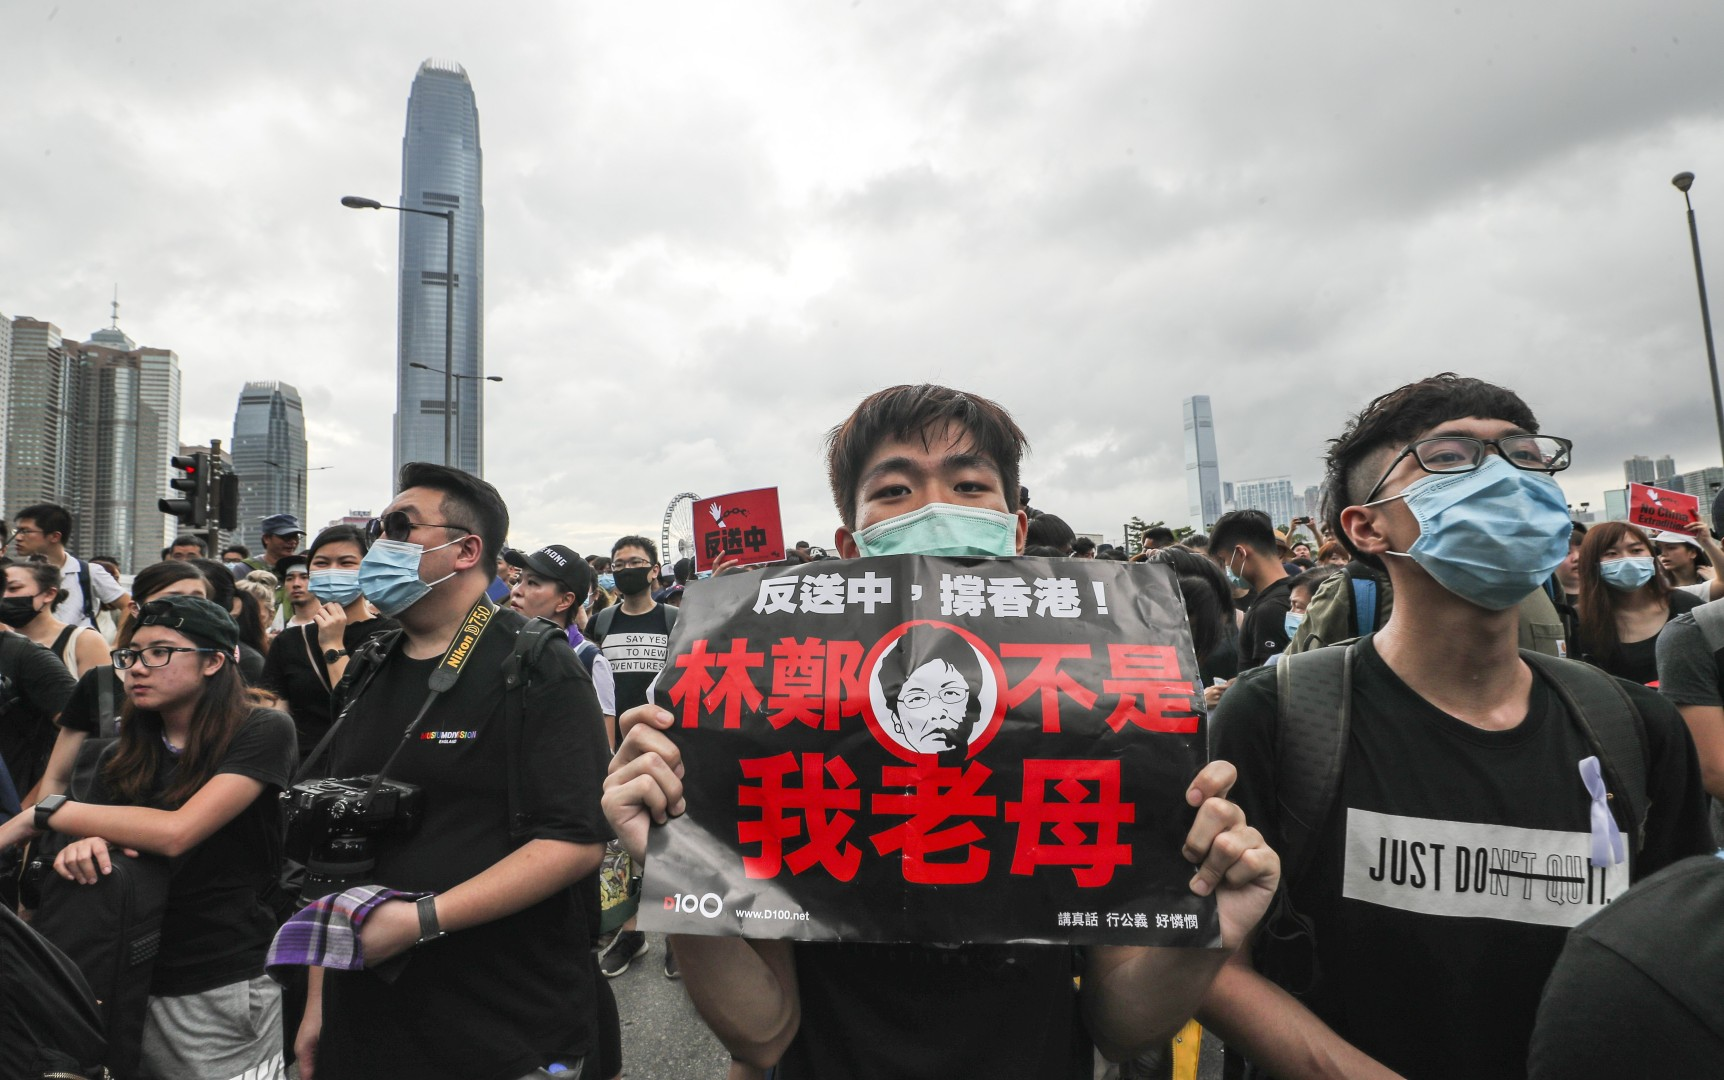 What's eating Hong Kong's young protesters? Maybe it's the